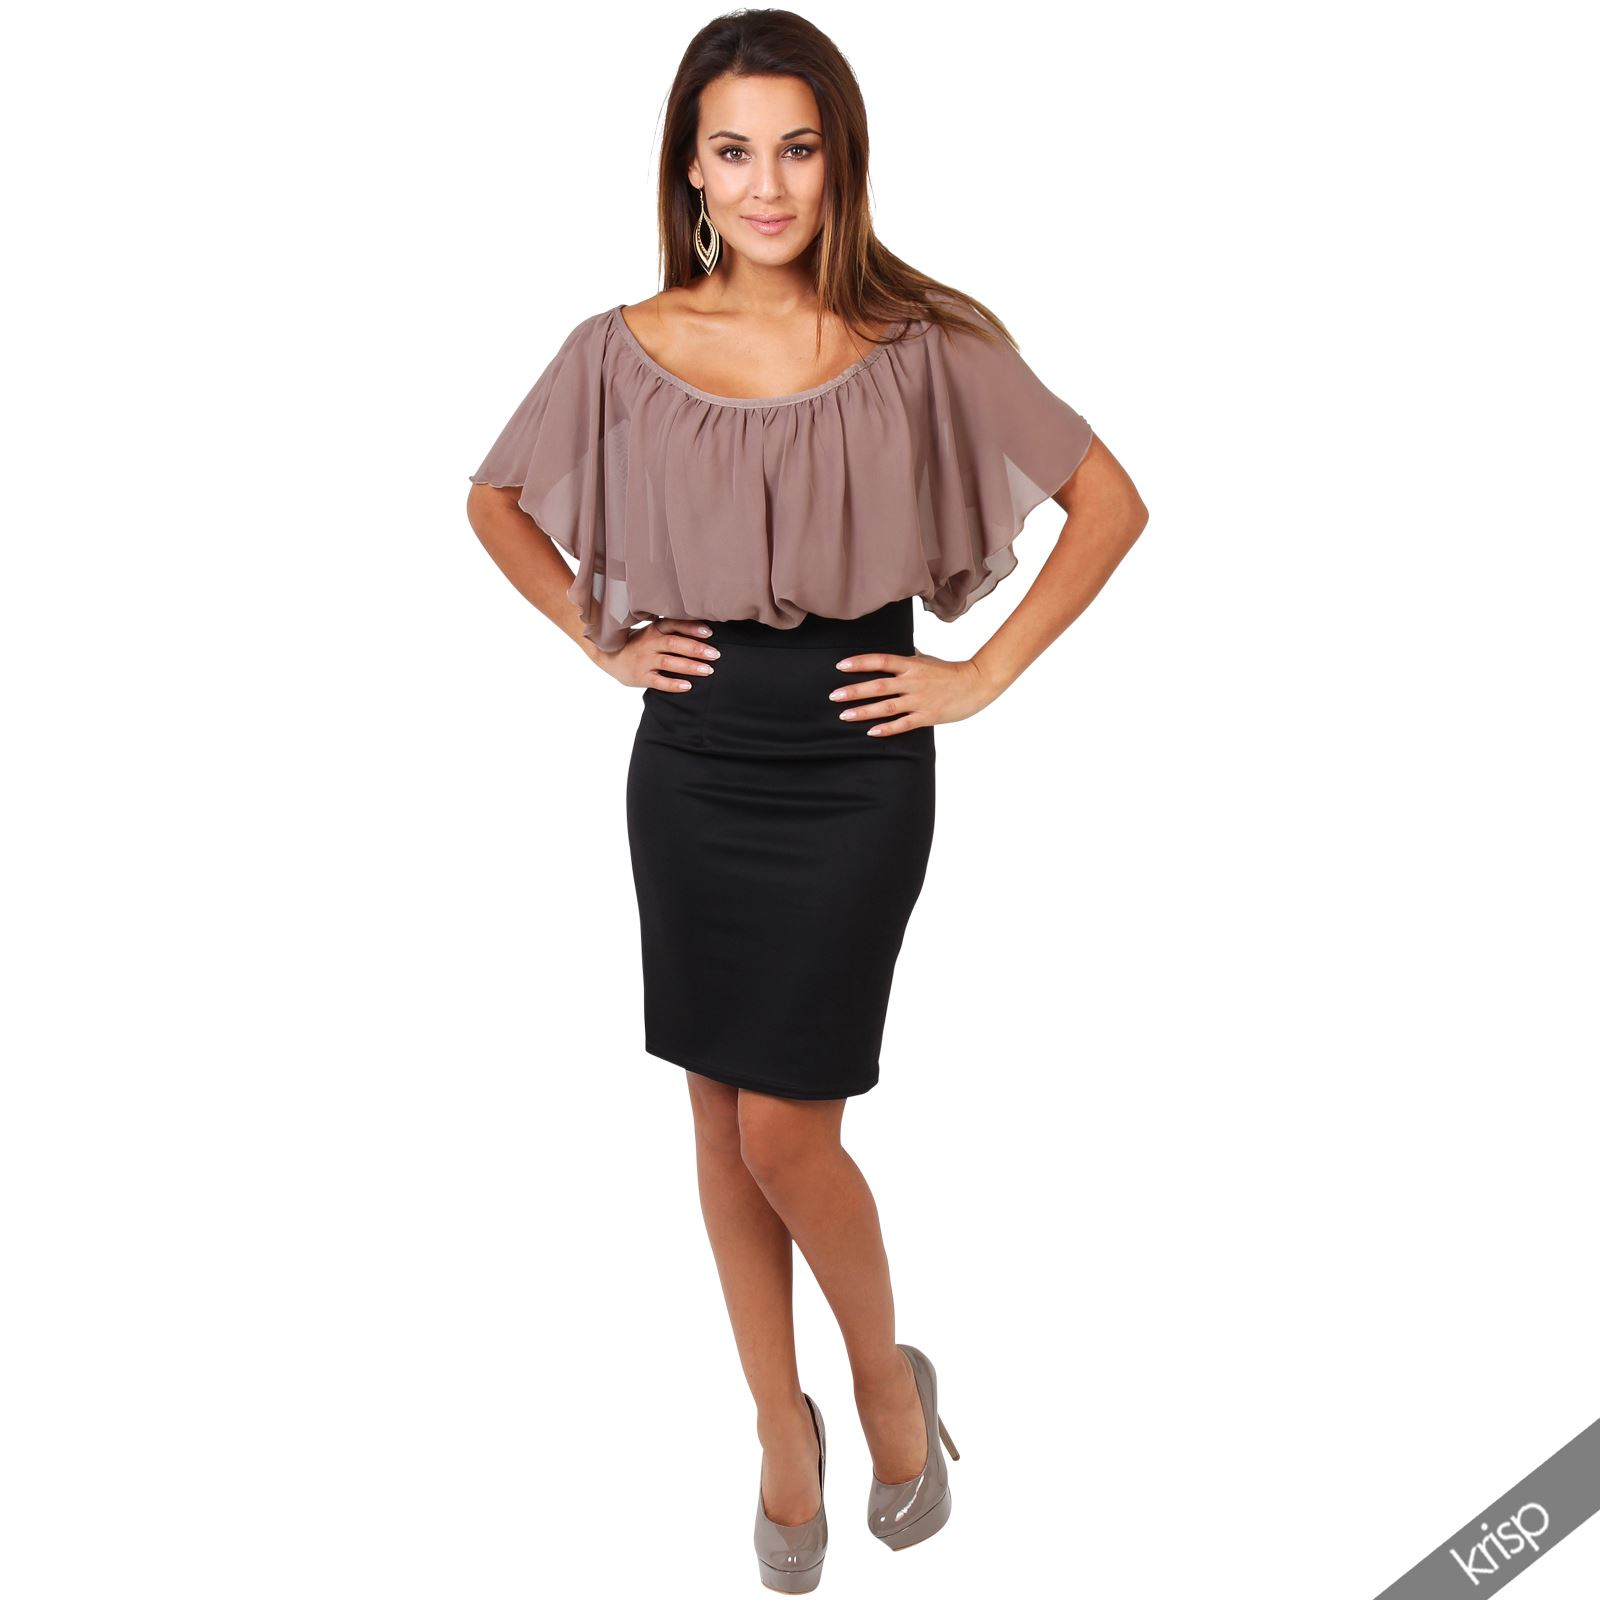 Ladies Pencil Skirts And Tops